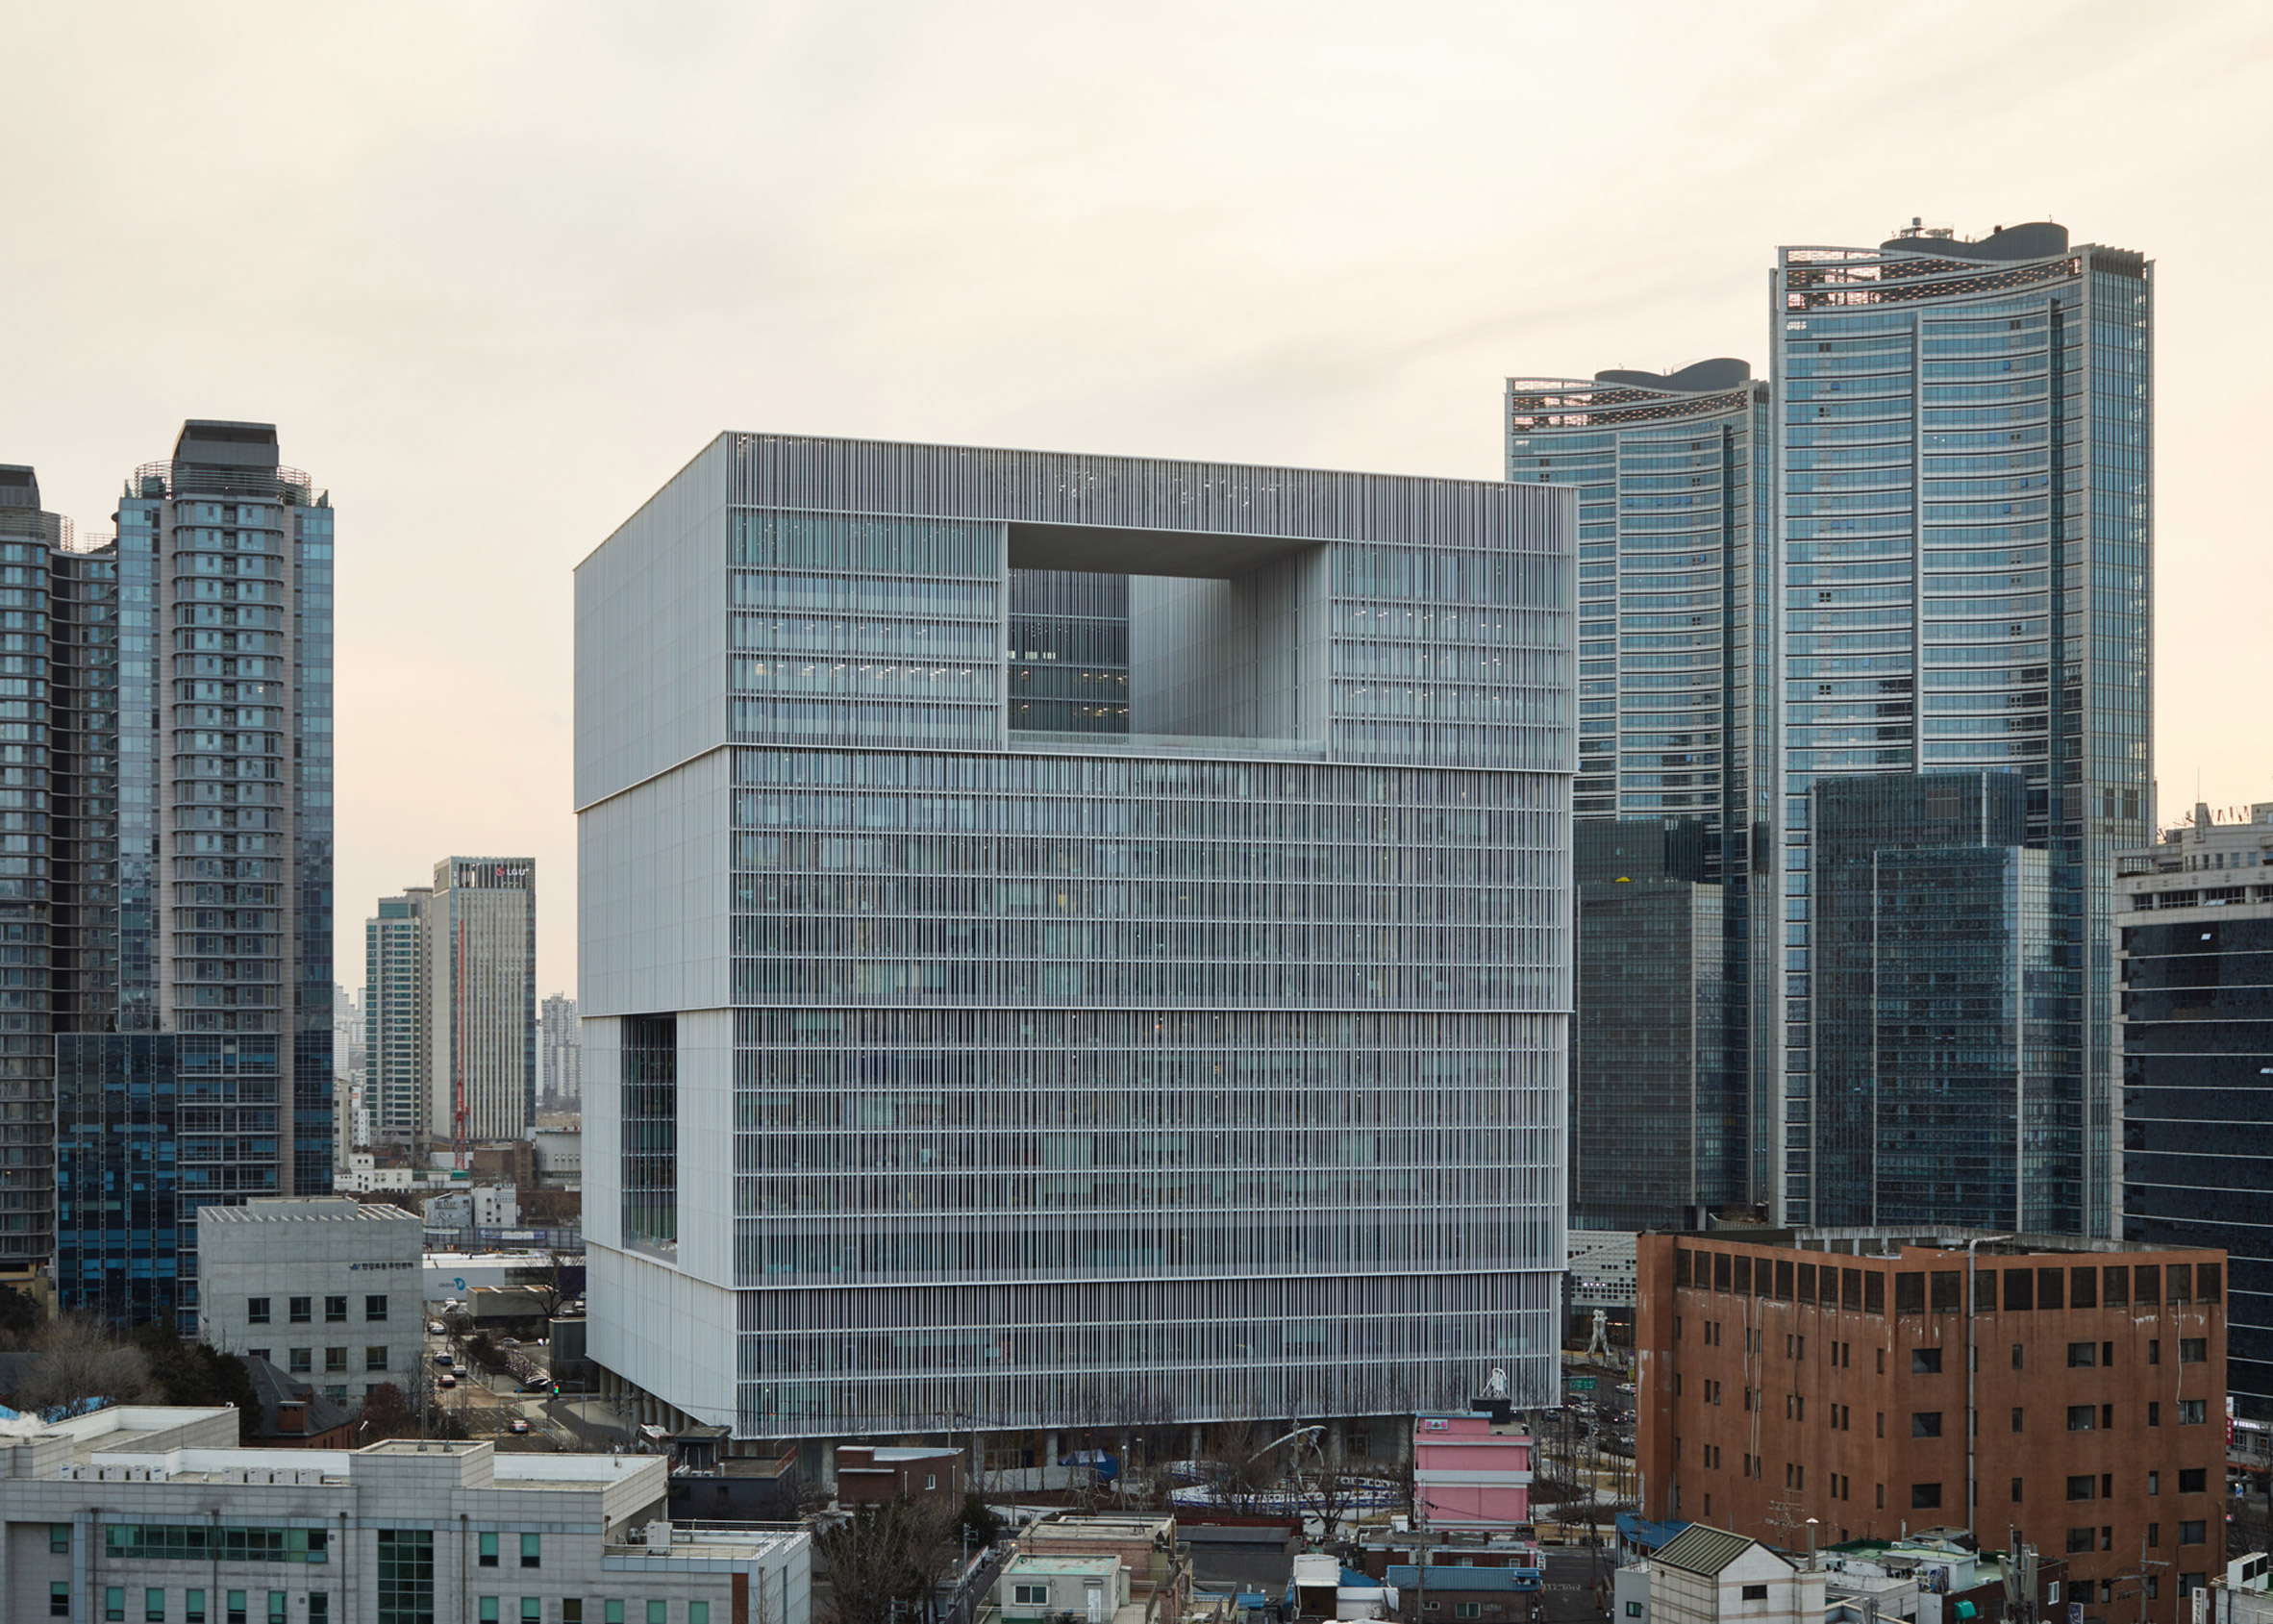 Dezeen Awards architecture winners: AmorePacific headquarters Seoul by David Chipperfield Architects Berlin